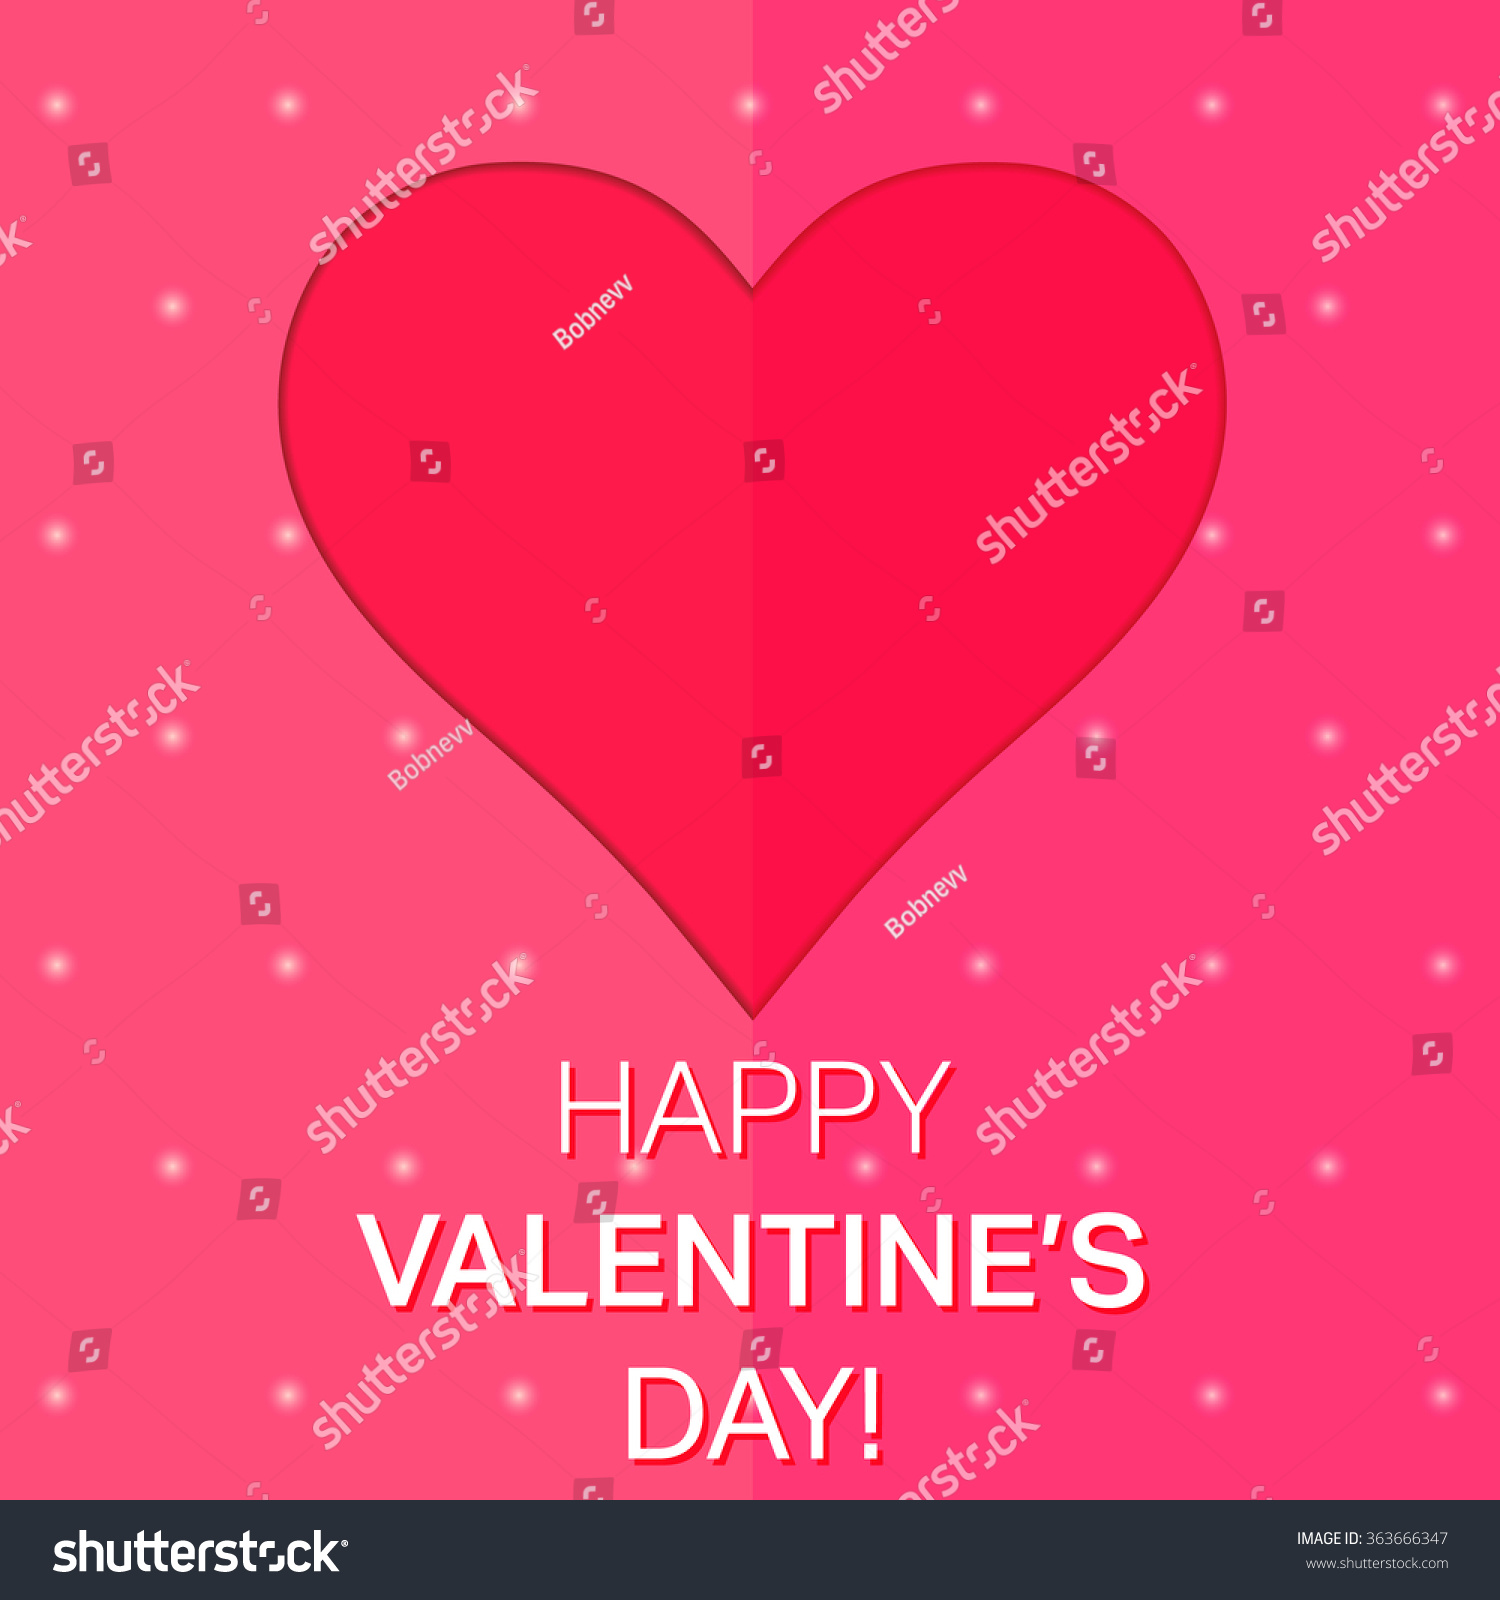 Love Red Heart Template Happy Valentines Day Design Element For